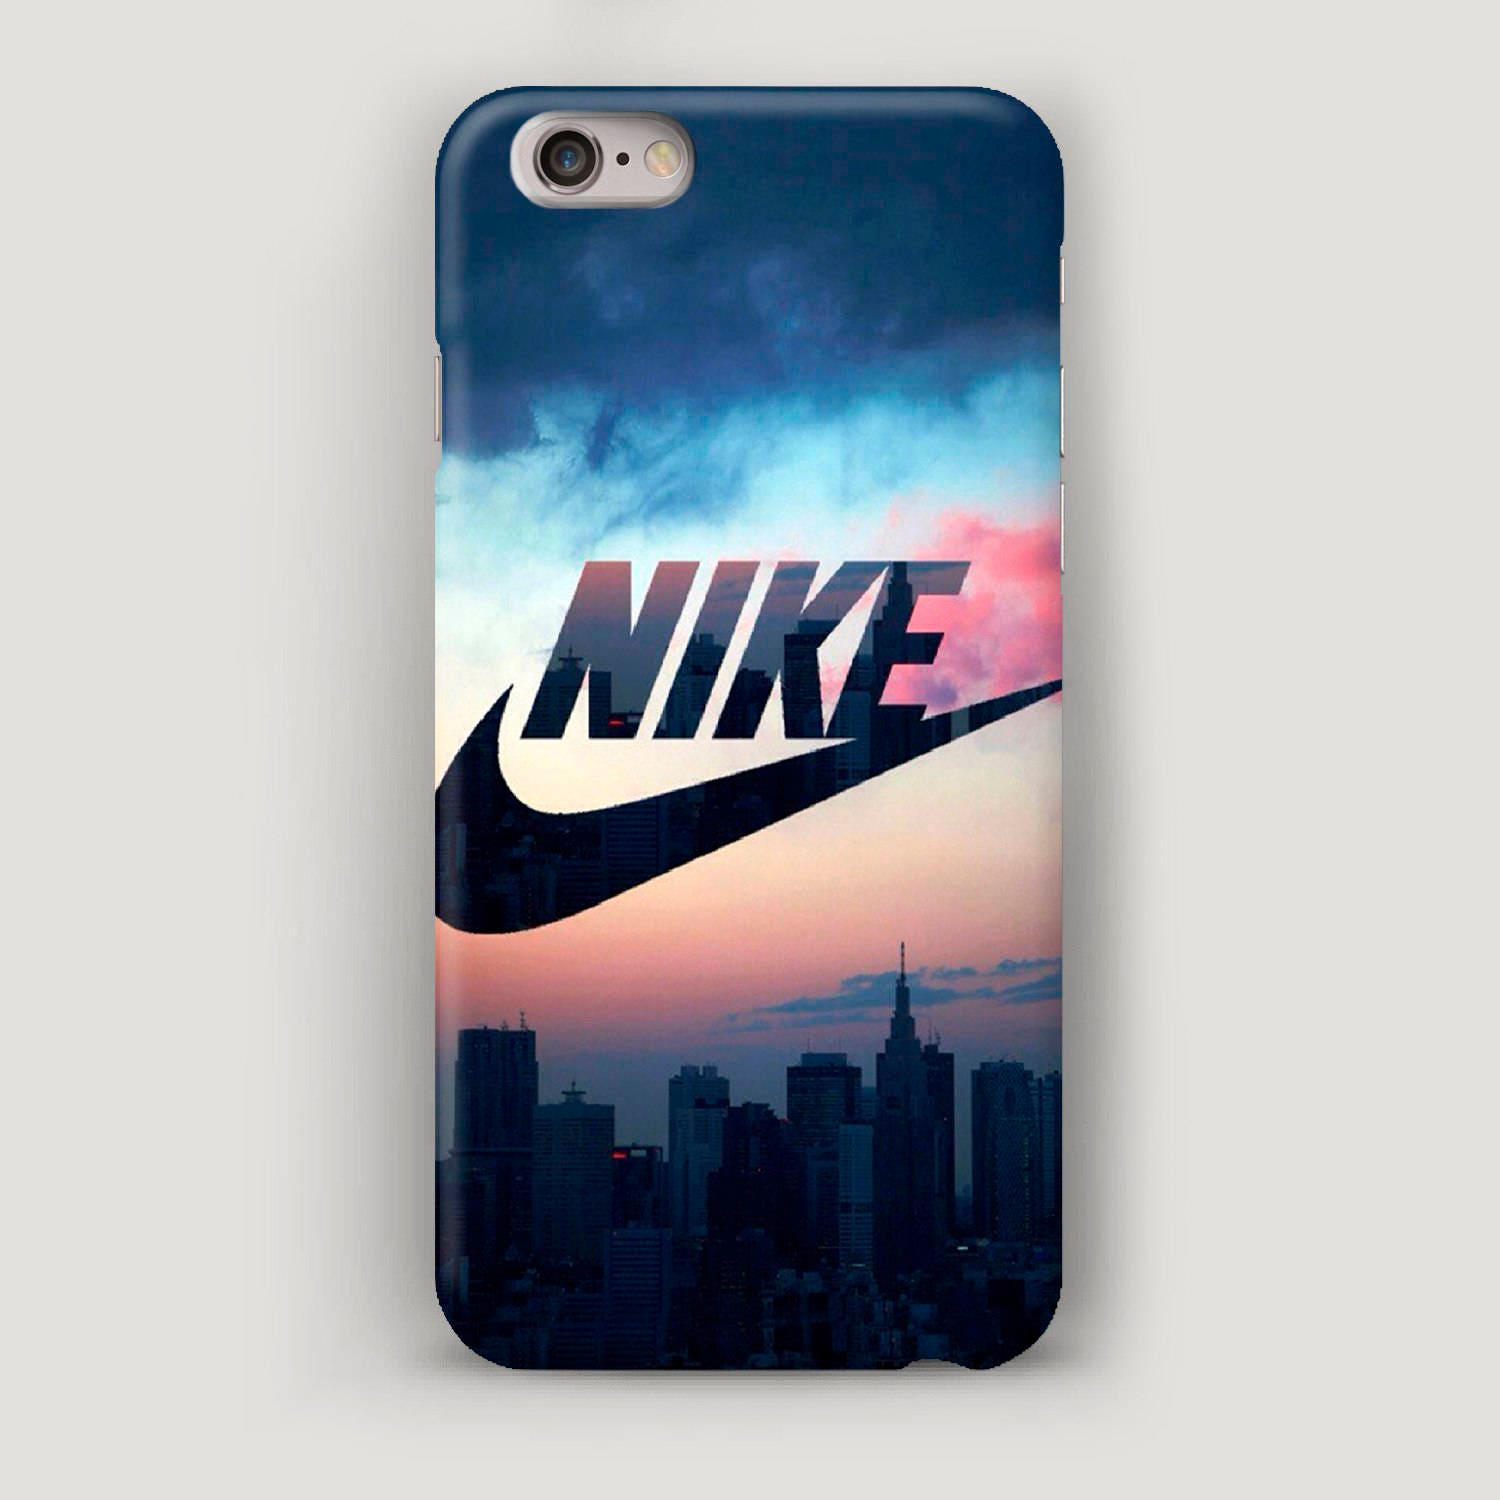 official photos 122c4 c729b City iPhone 6S Case, Nike iPhone 8 Plus Case, iPhone X Case Nike, iPhone 5  Case, Nike Phone Case, iPhone 7 Cover, Urban Case iPhone X